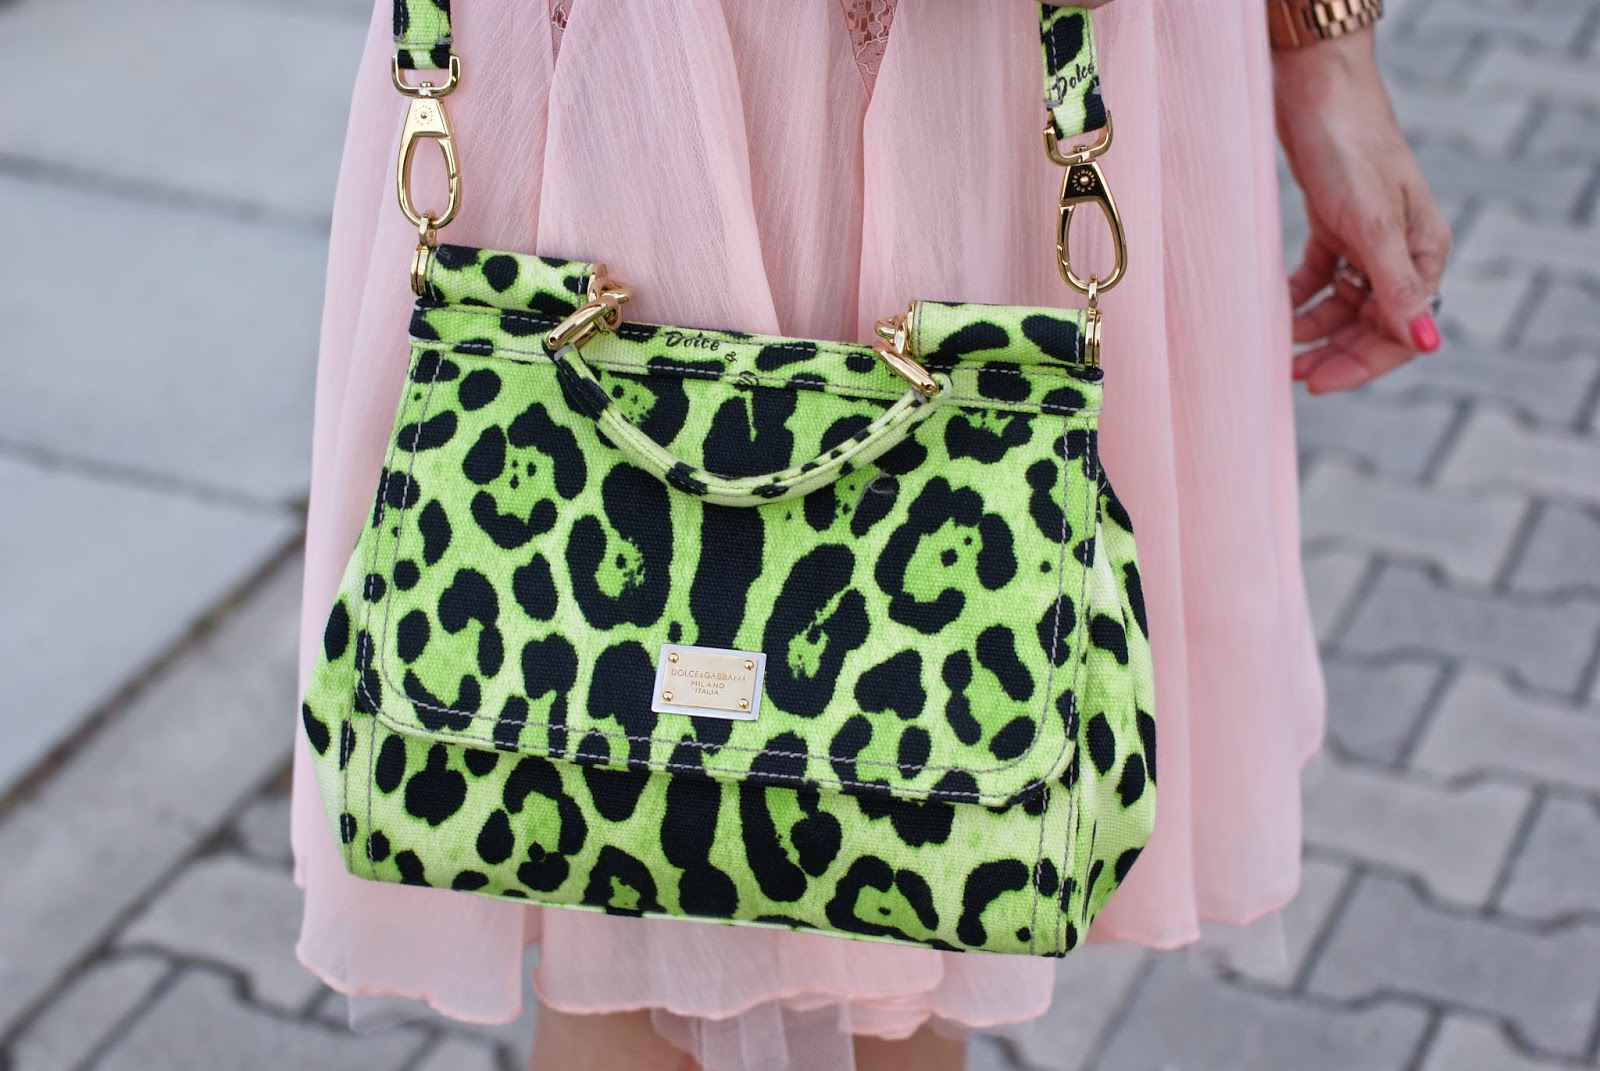 Dolce e gabbana Miss Sicily green animalier bag, Fashion and Cookies, fashion blogger